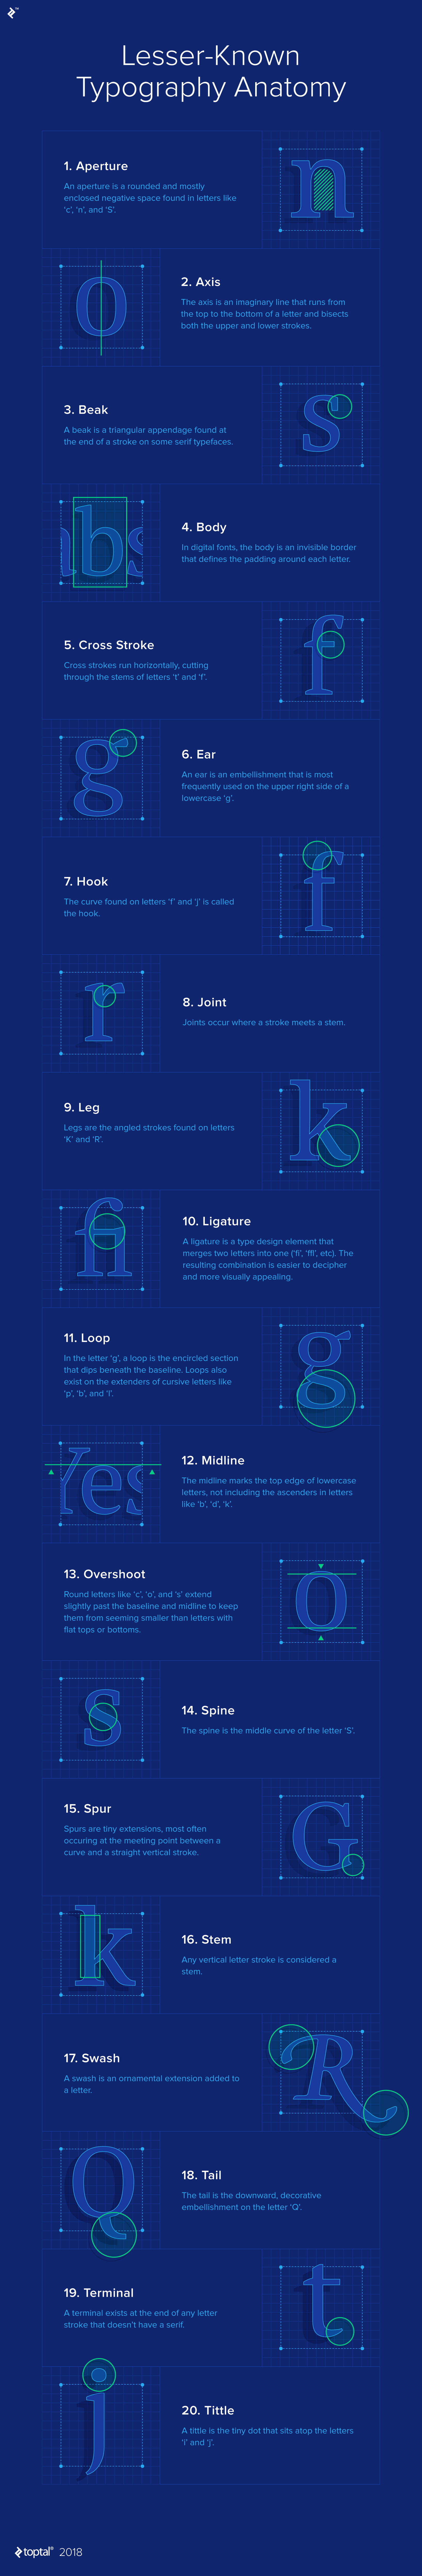 Lesser-known typography terms infographic